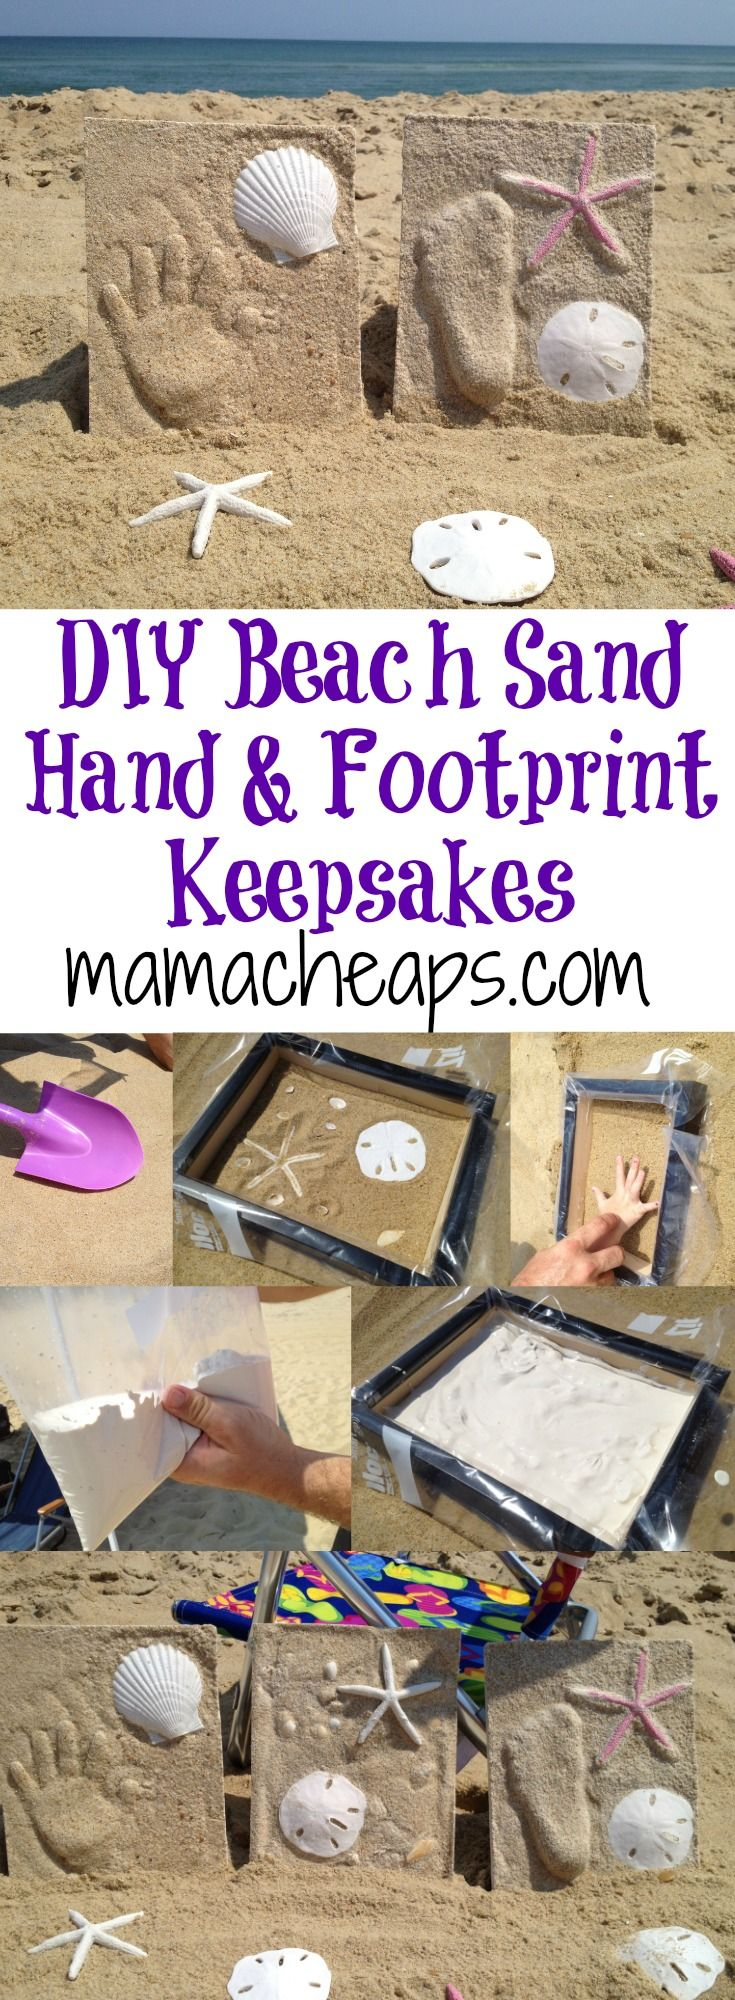 2275 best beach and nautical diy crafts images on pinterest diy beach sand hand and footprint keepsakes solutioingenieria Choice Image